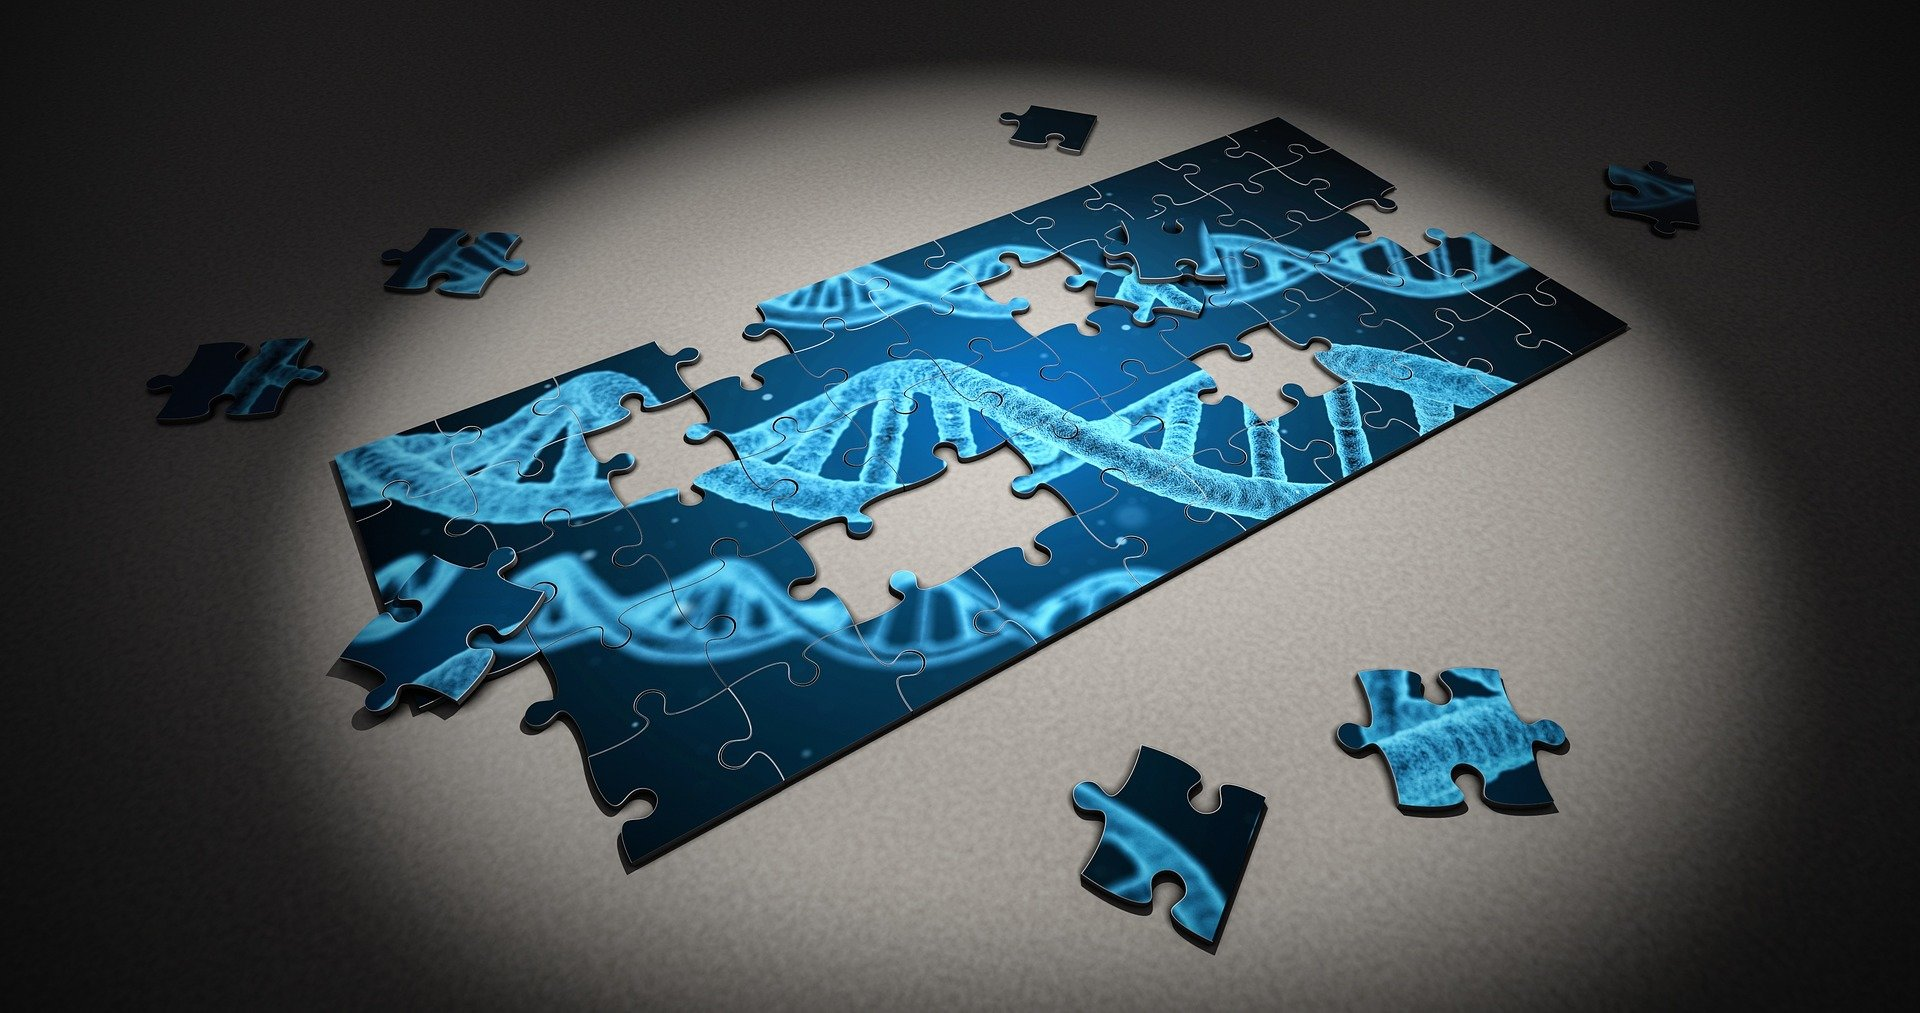 Researchers find more genes associated with intelligence and